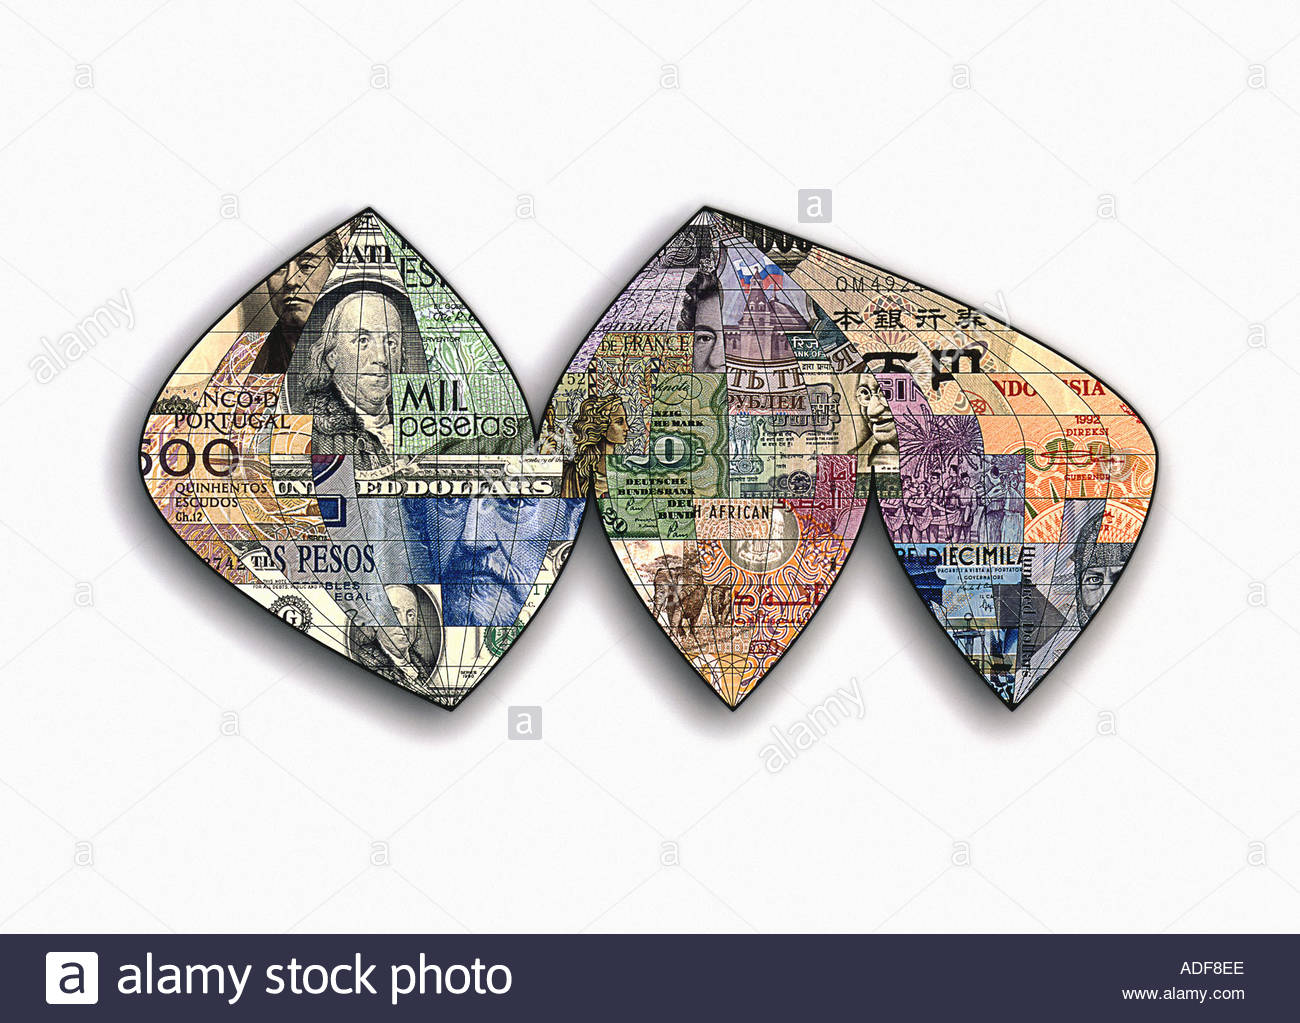 The financial world - Stock Image